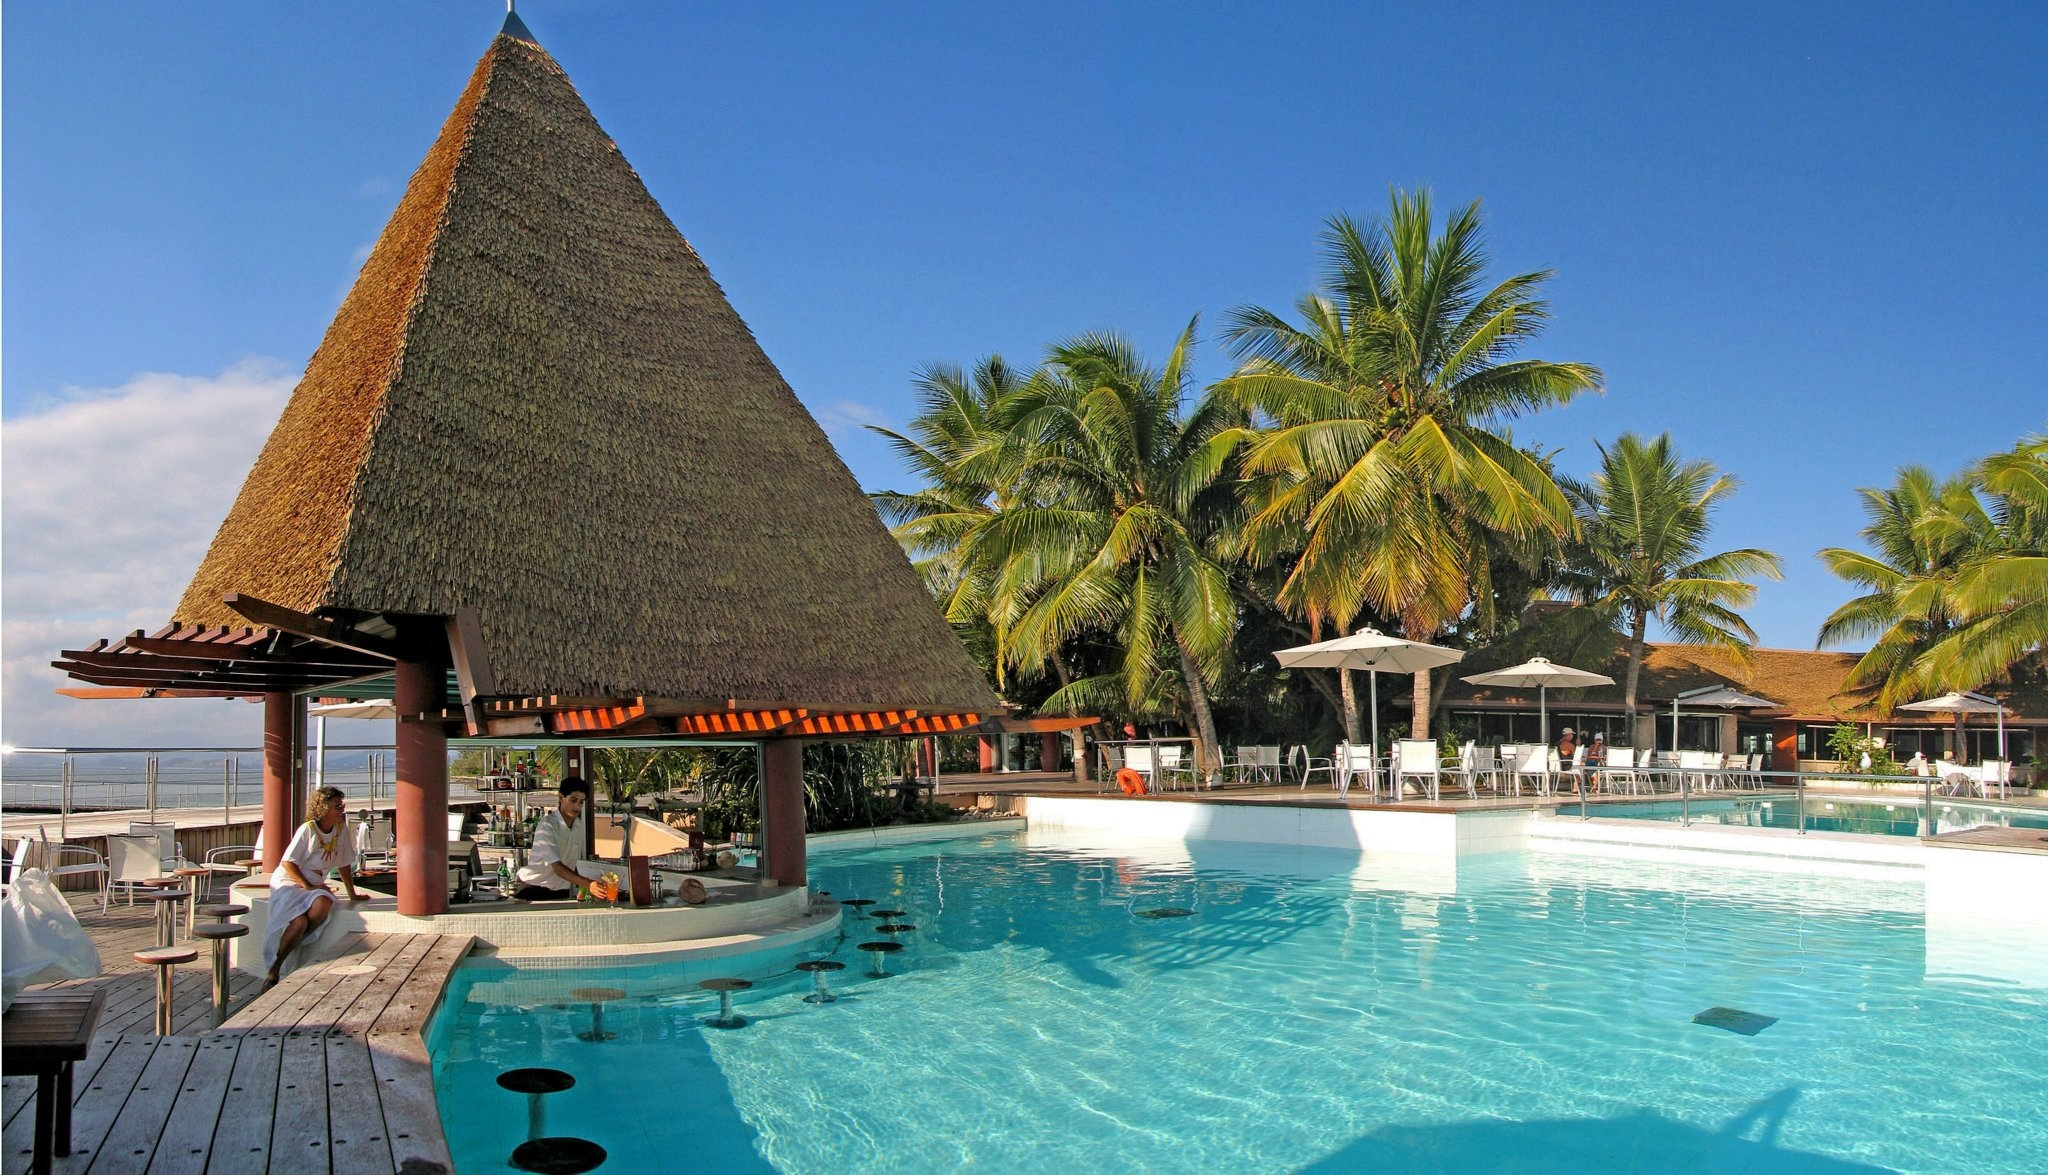 Escapade Island pool and bar